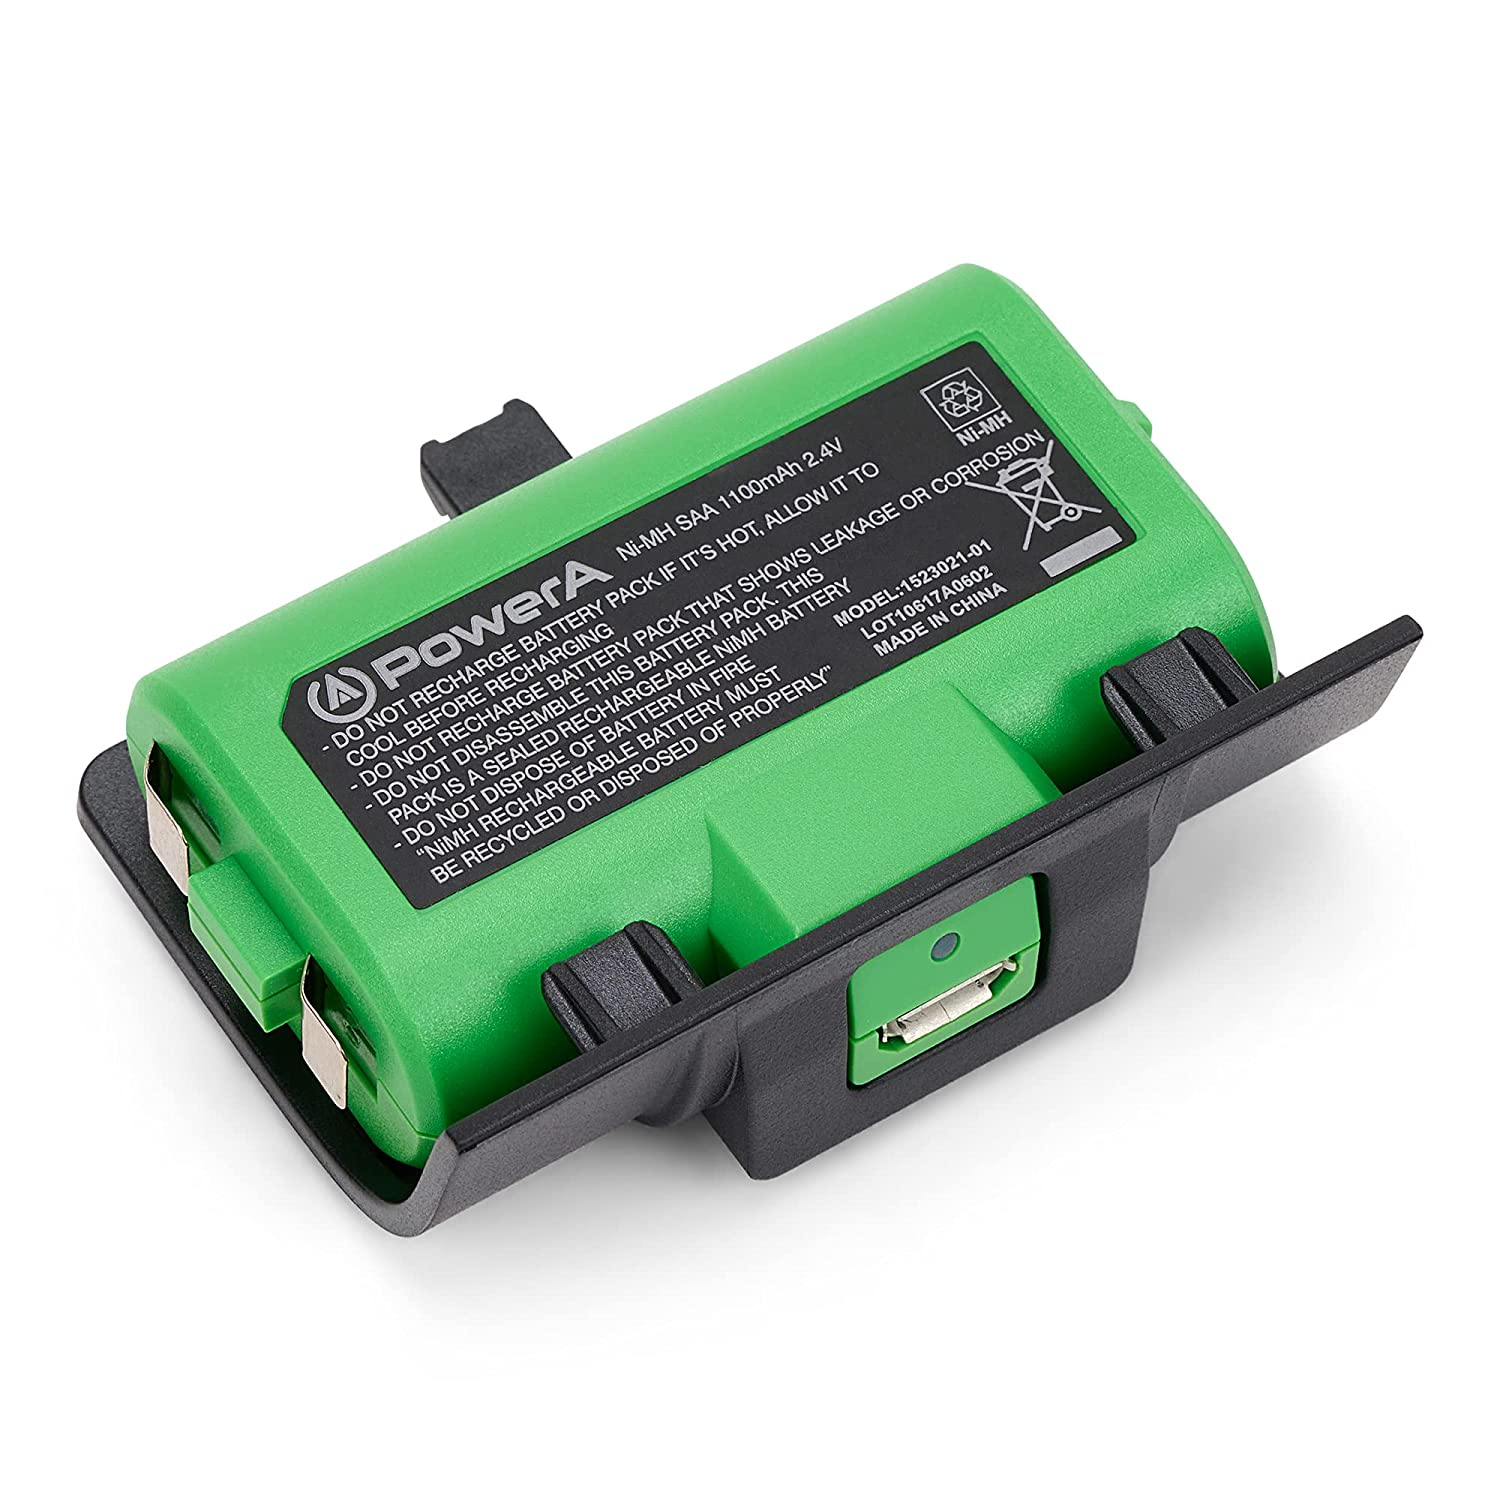 PowerA Rechargeable Battery Pack for Xbox Series X S, battery co